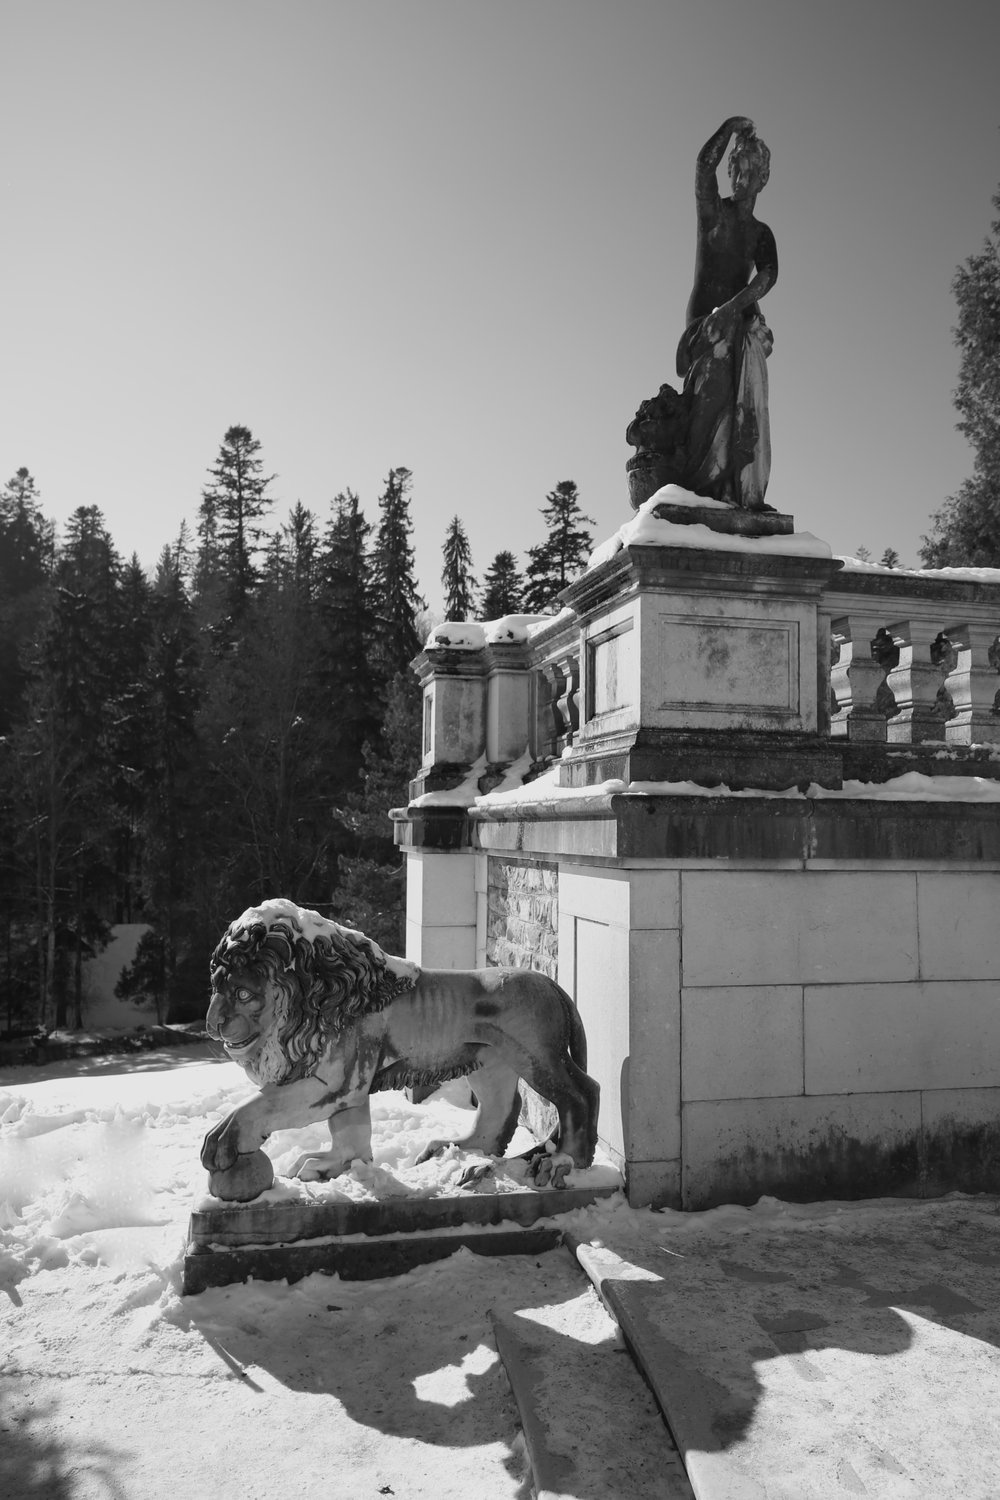 Garden statues - a lion and a greek lady, with snow piled high.